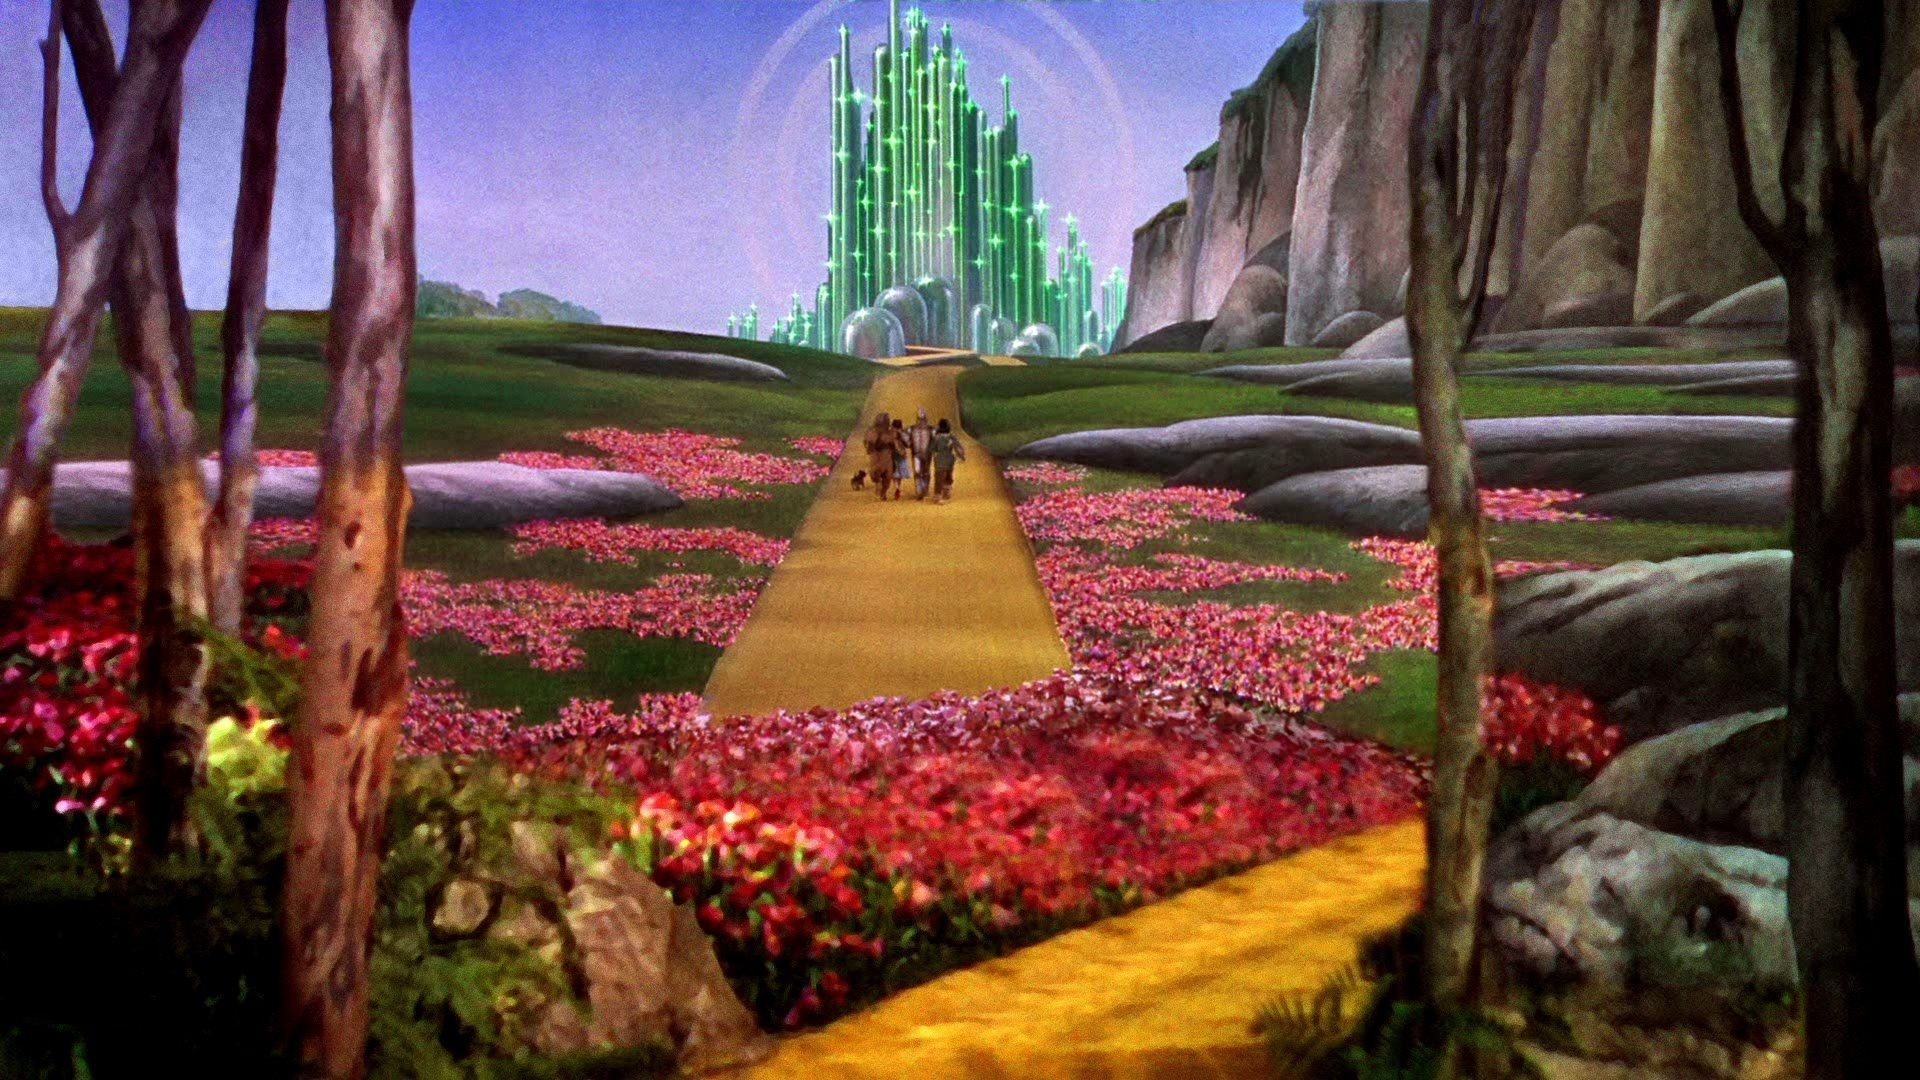 Yorkshire Rose Images The Wizard Of Oz Hd Wallpaper And Background Photos